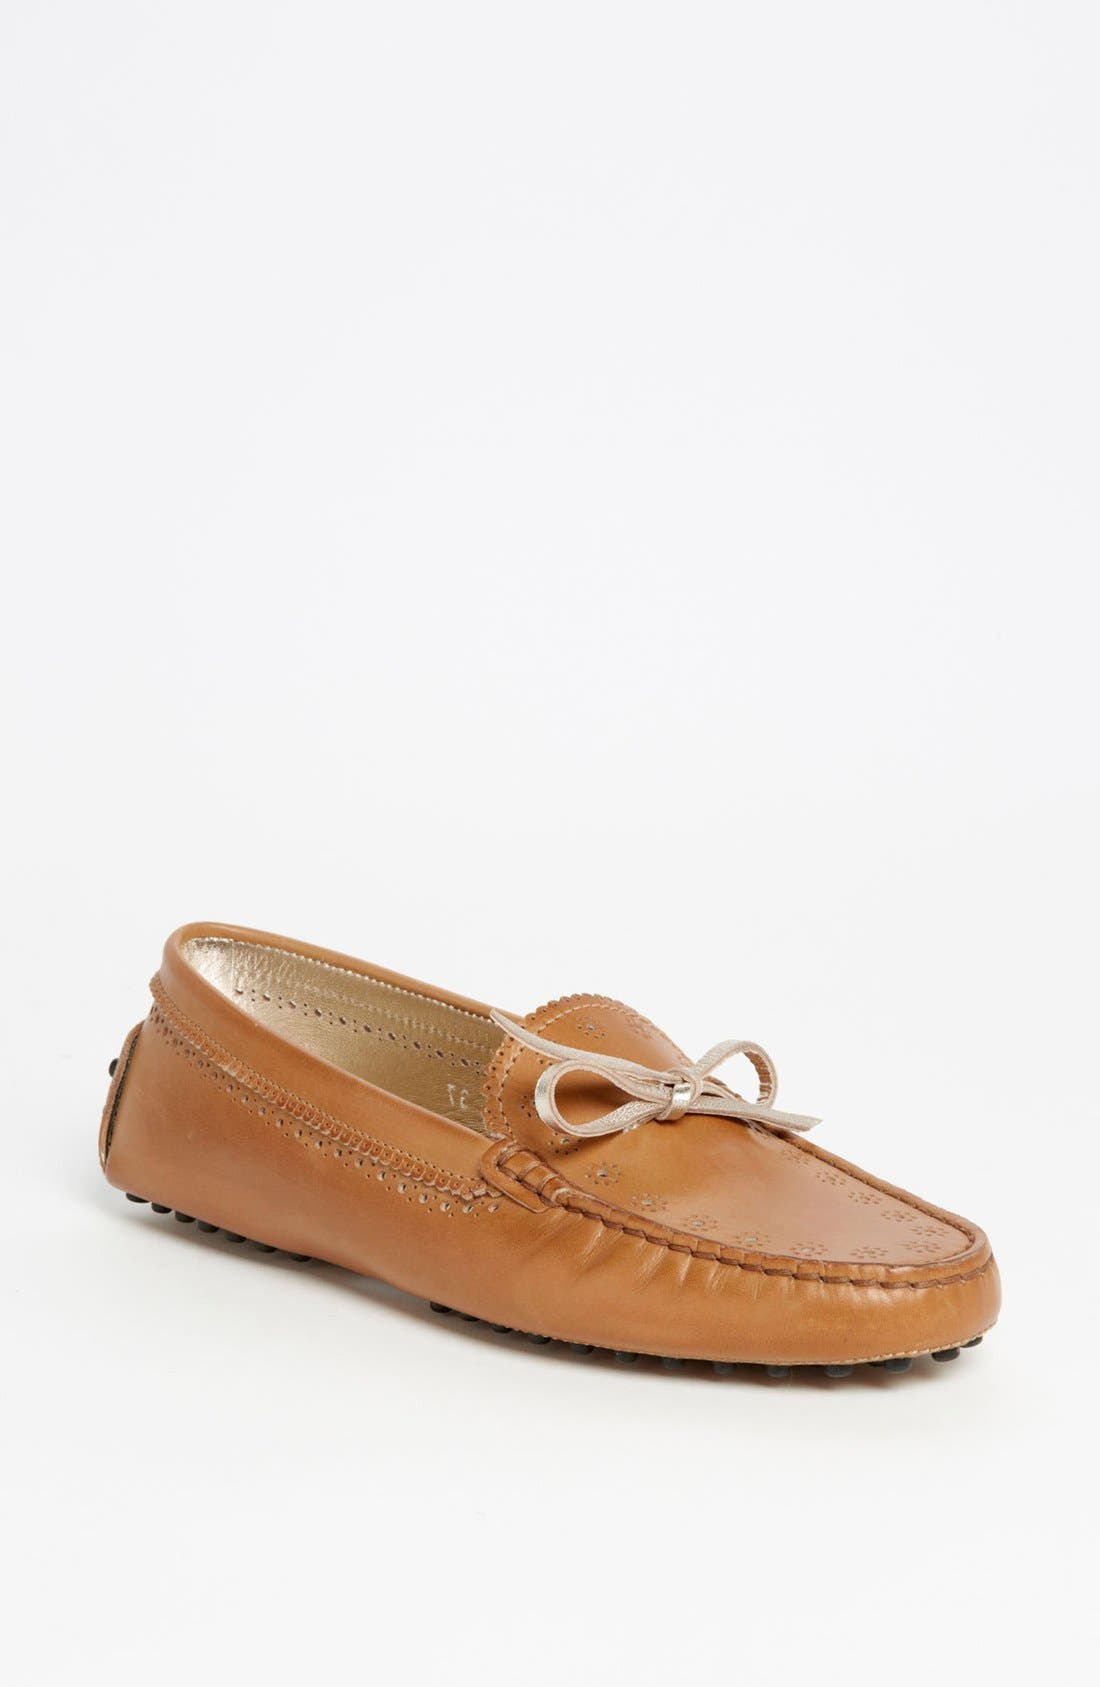 Alternate Image 1 Selected - Tod's 'Heaven Laccetto' Driving Moccasin